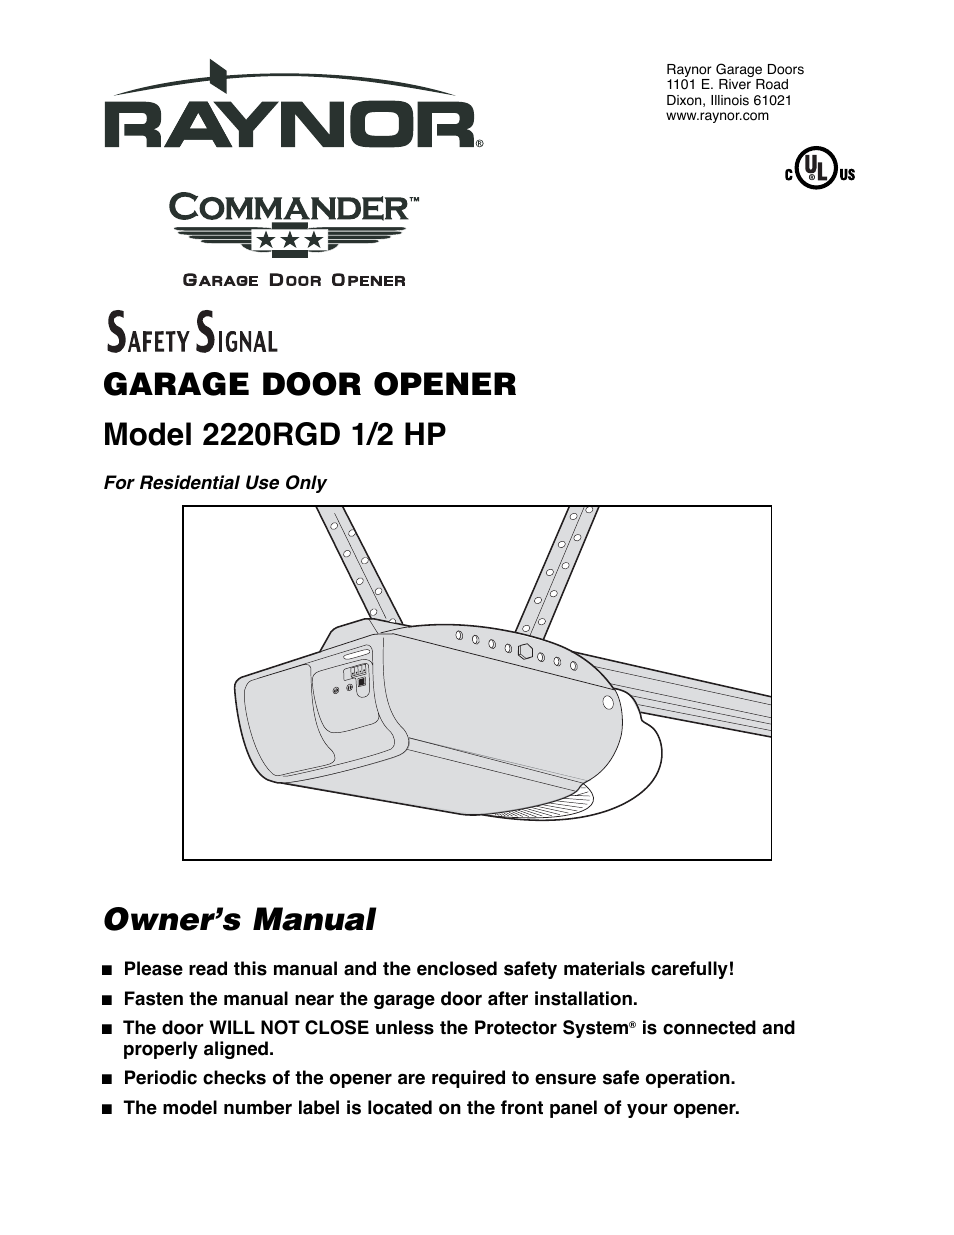 Chamberlain 2220rgd 1 2 Hp User Manual 36 Pages Raynor Garage Door Opener Wiring Diagram